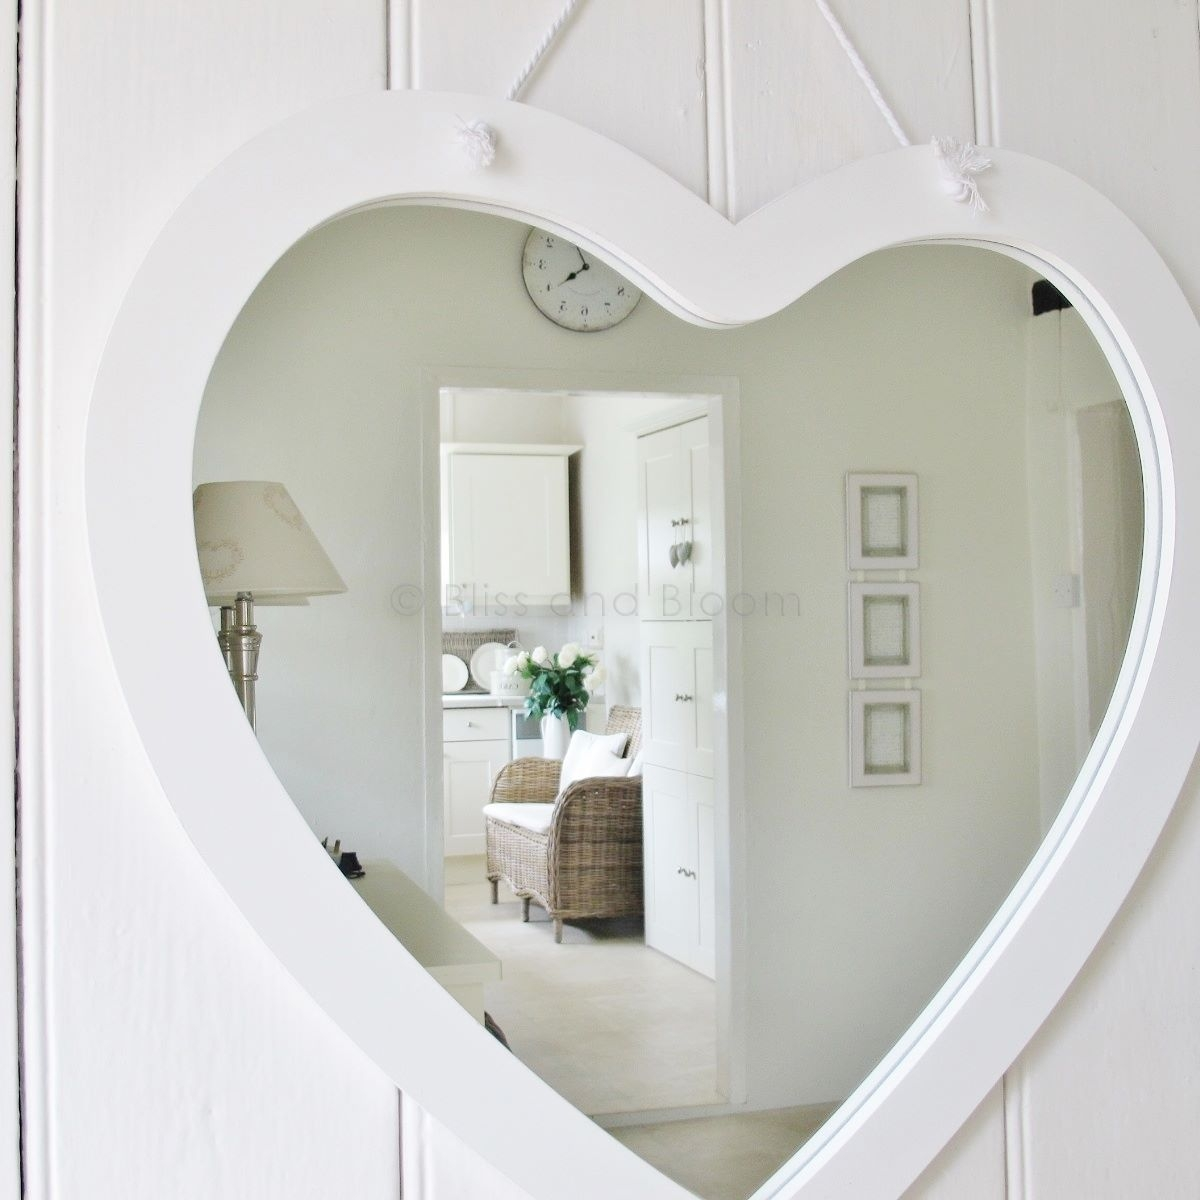 Large White Heart Mirror Bliss And Bloom Ltd Intended For Large Heart Mirror (Image 12 of 15)